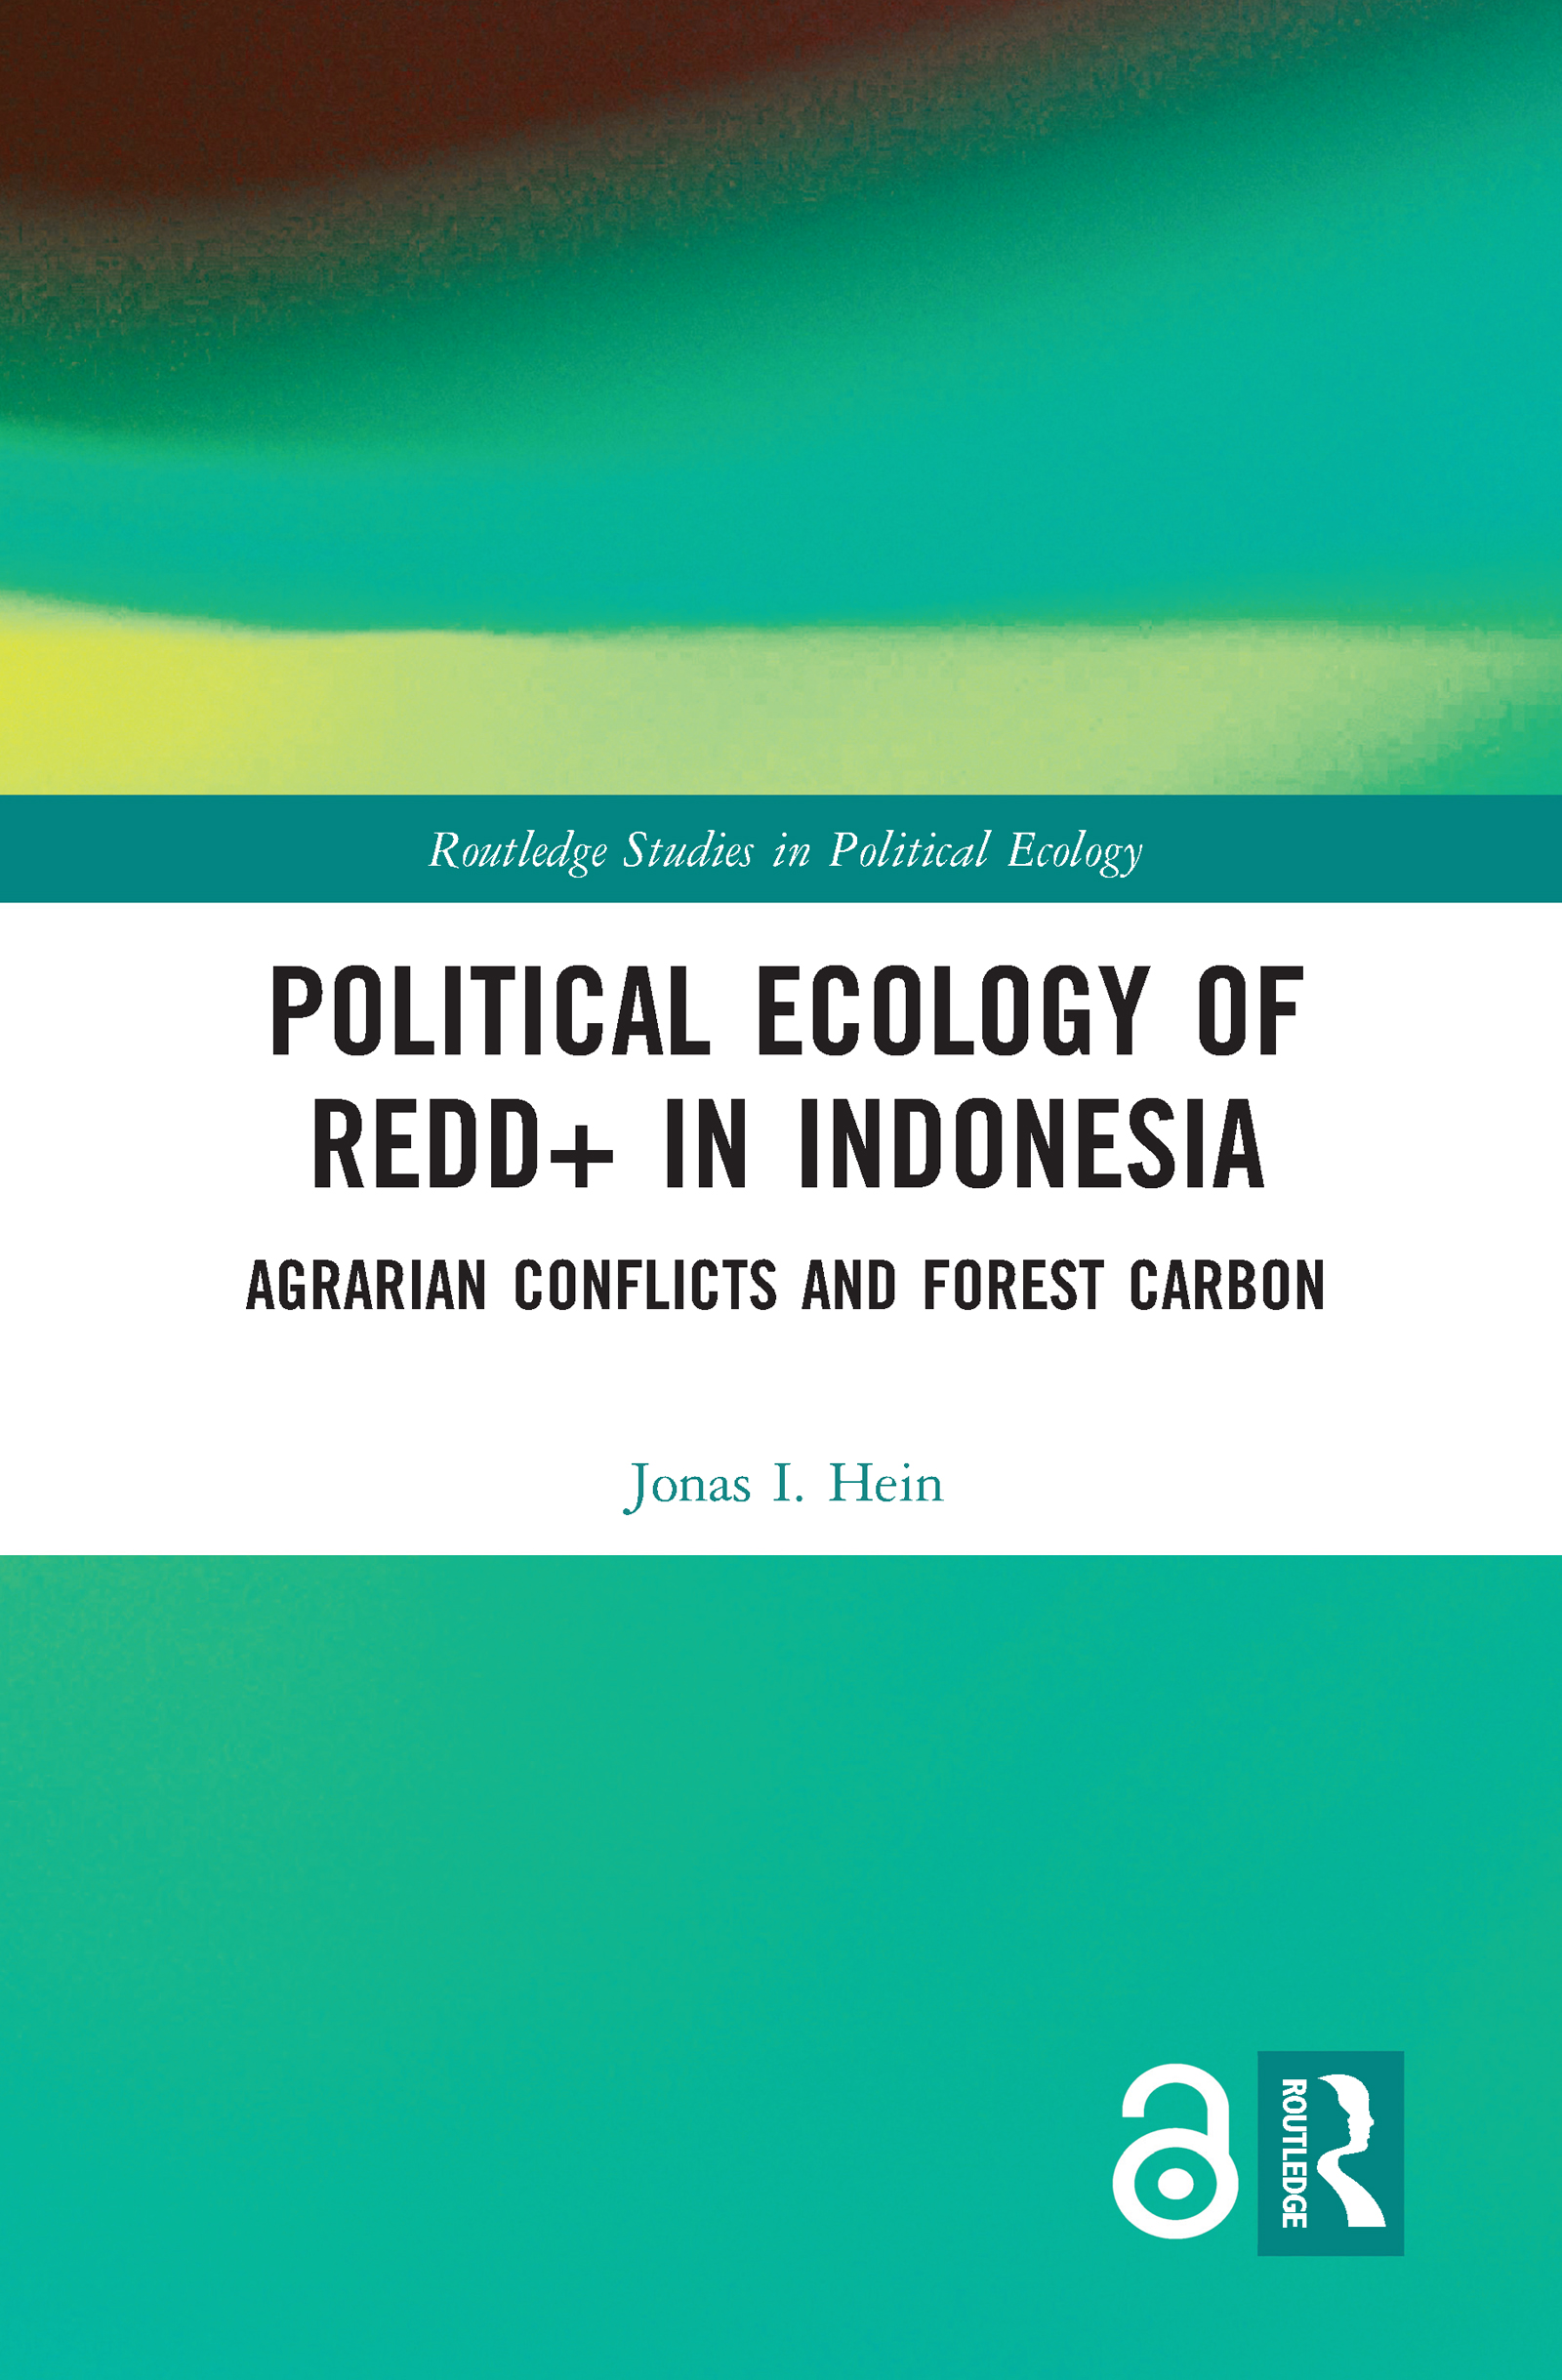 Political Ecology of REDD+ in Indonesia (Open Access)